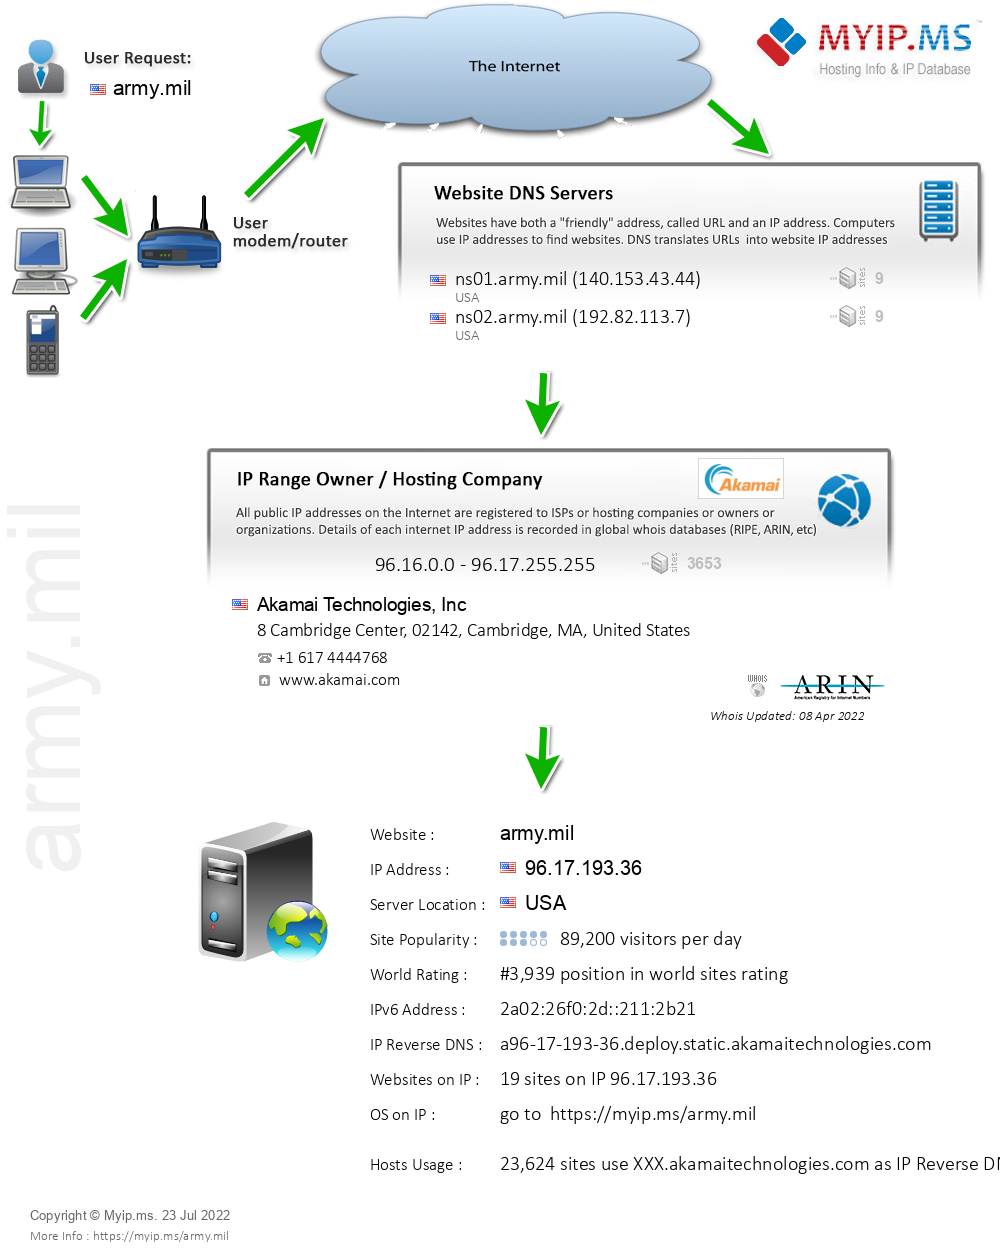 Army.mil - Website Hosting Visual IP Diagram